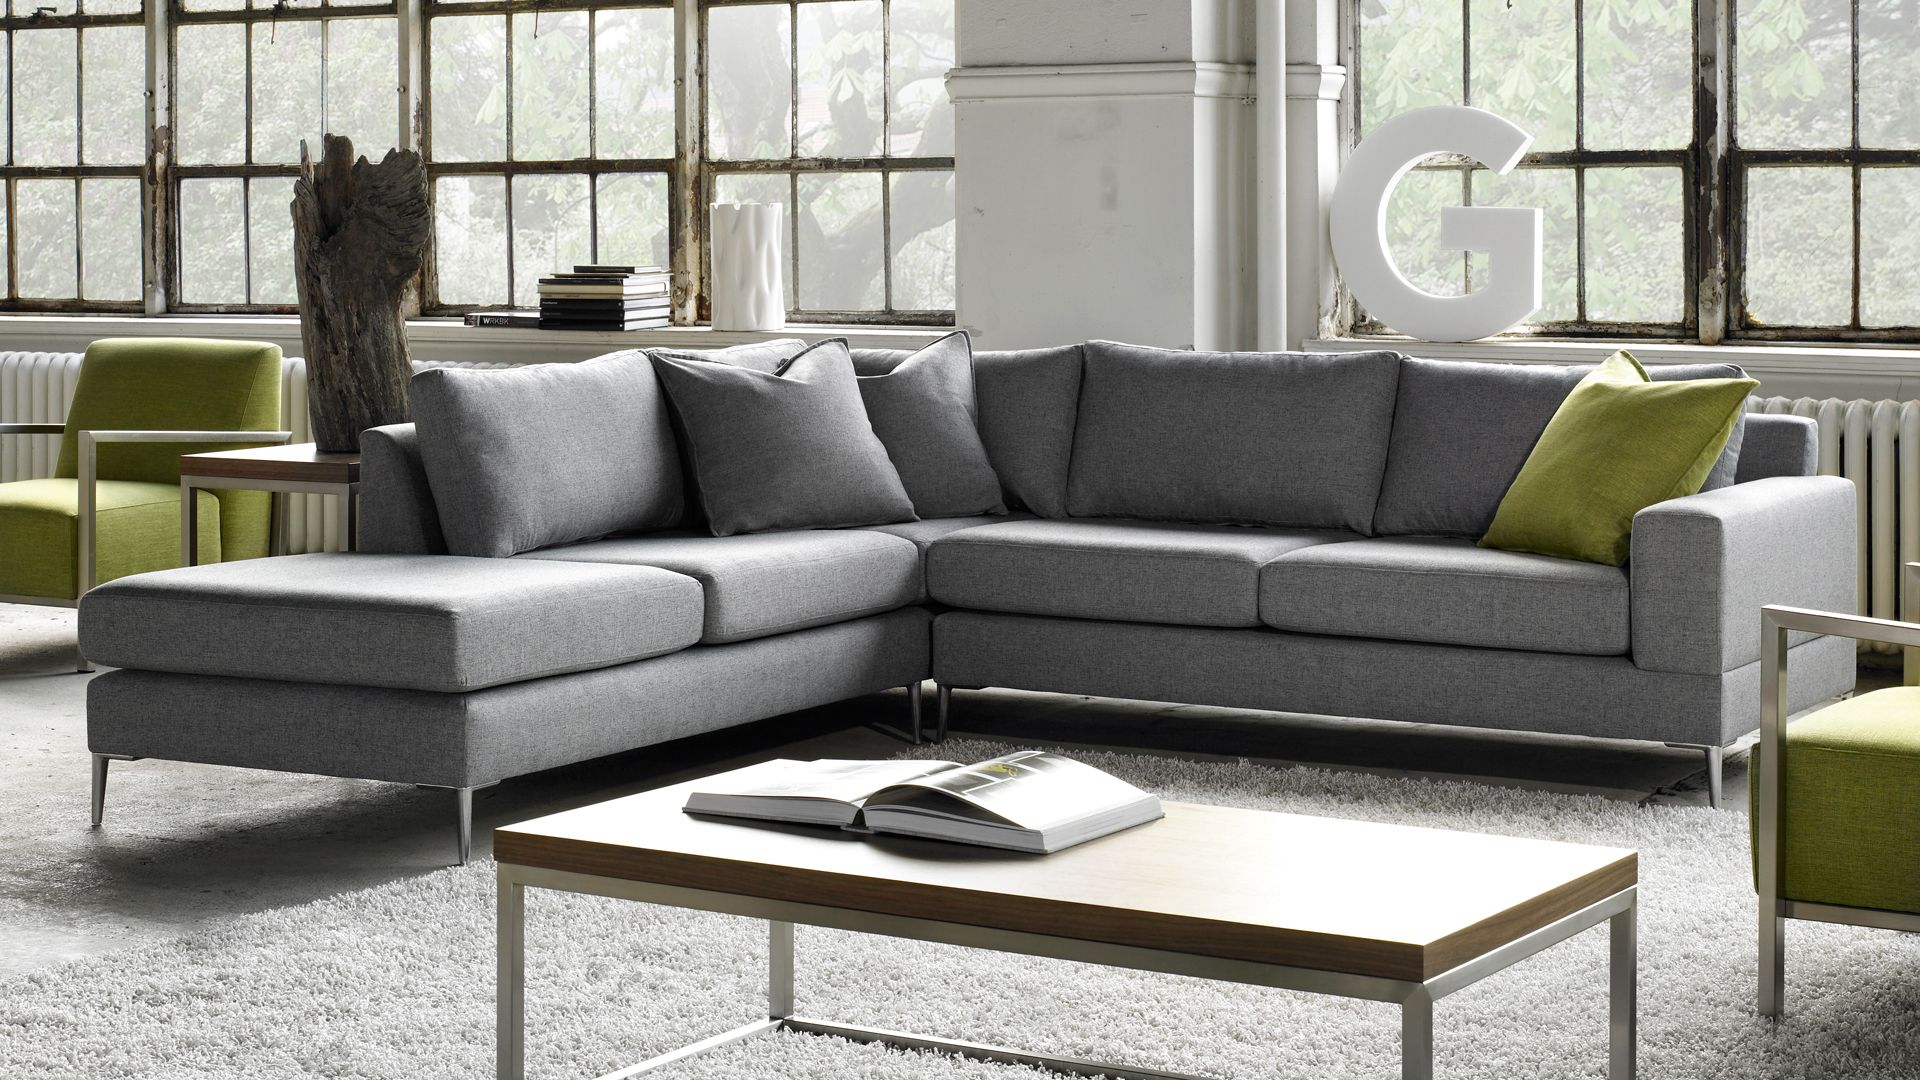 Outstanding Aria Sectional Made In Montreal By G Romano Home Evergreenethics Interior Chair Design Evergreenethicsorg